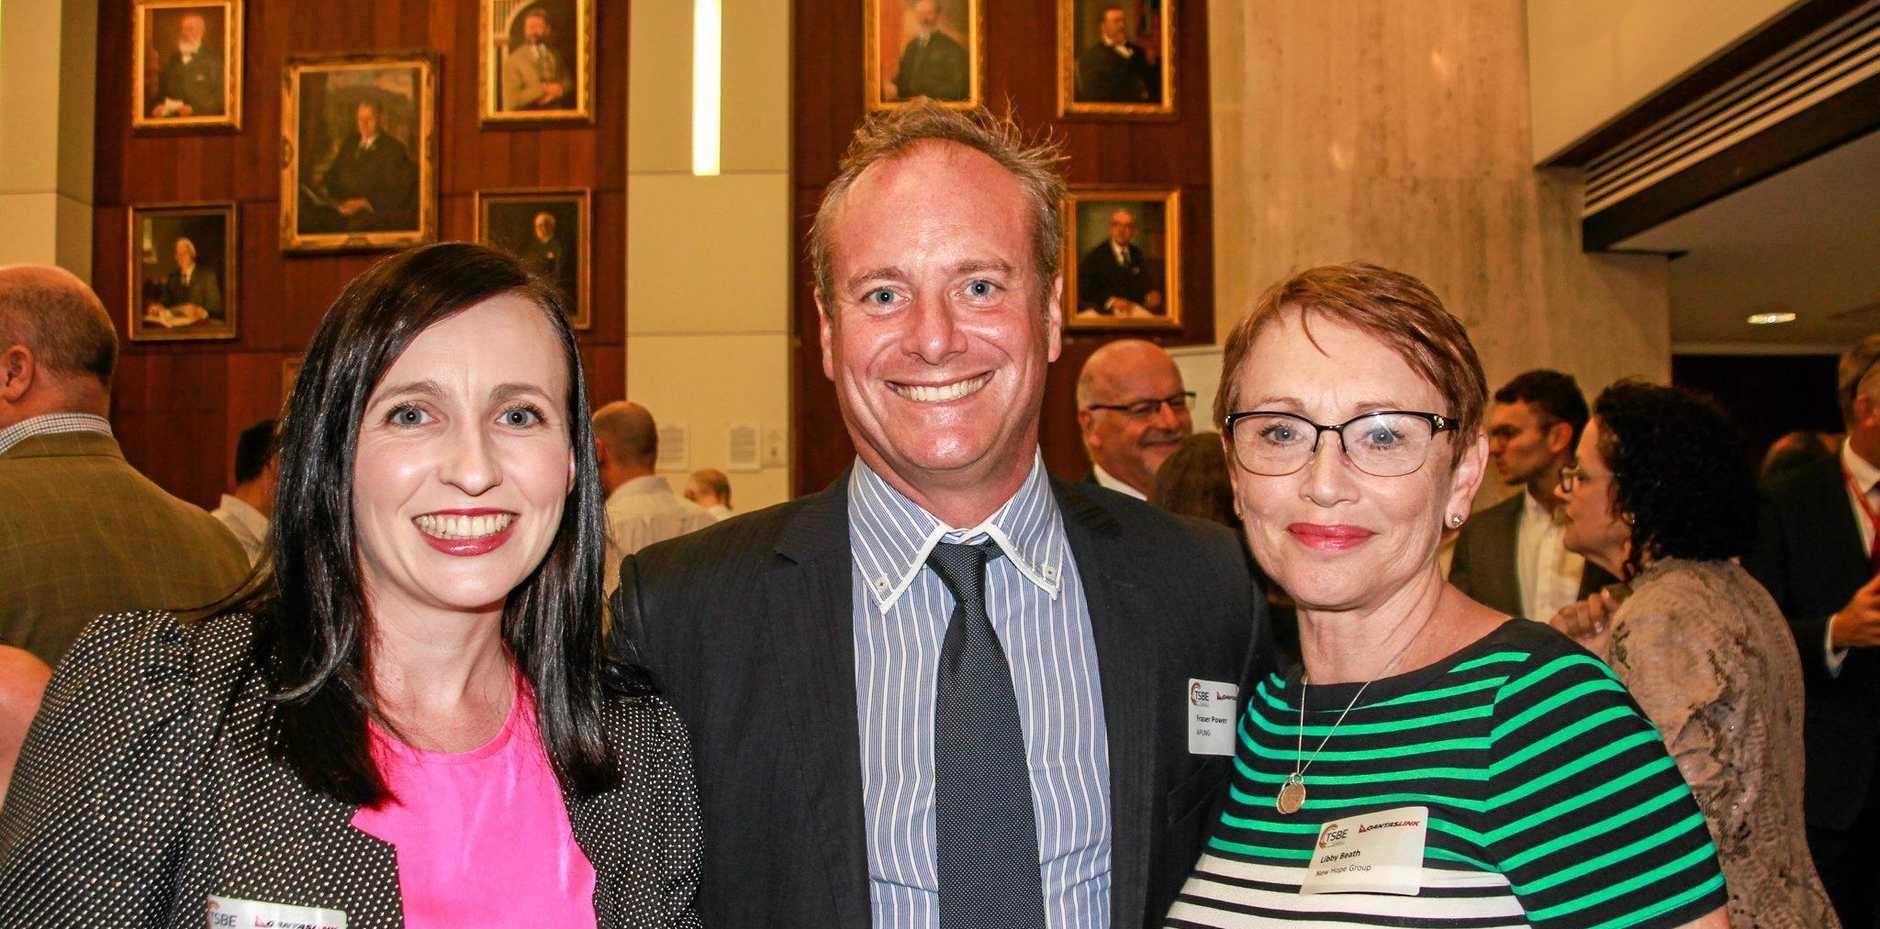 All smiles are (from left) Susan Moore from APLNG, Fraser Power from APLNG and Libby Beath from New Hope Group.